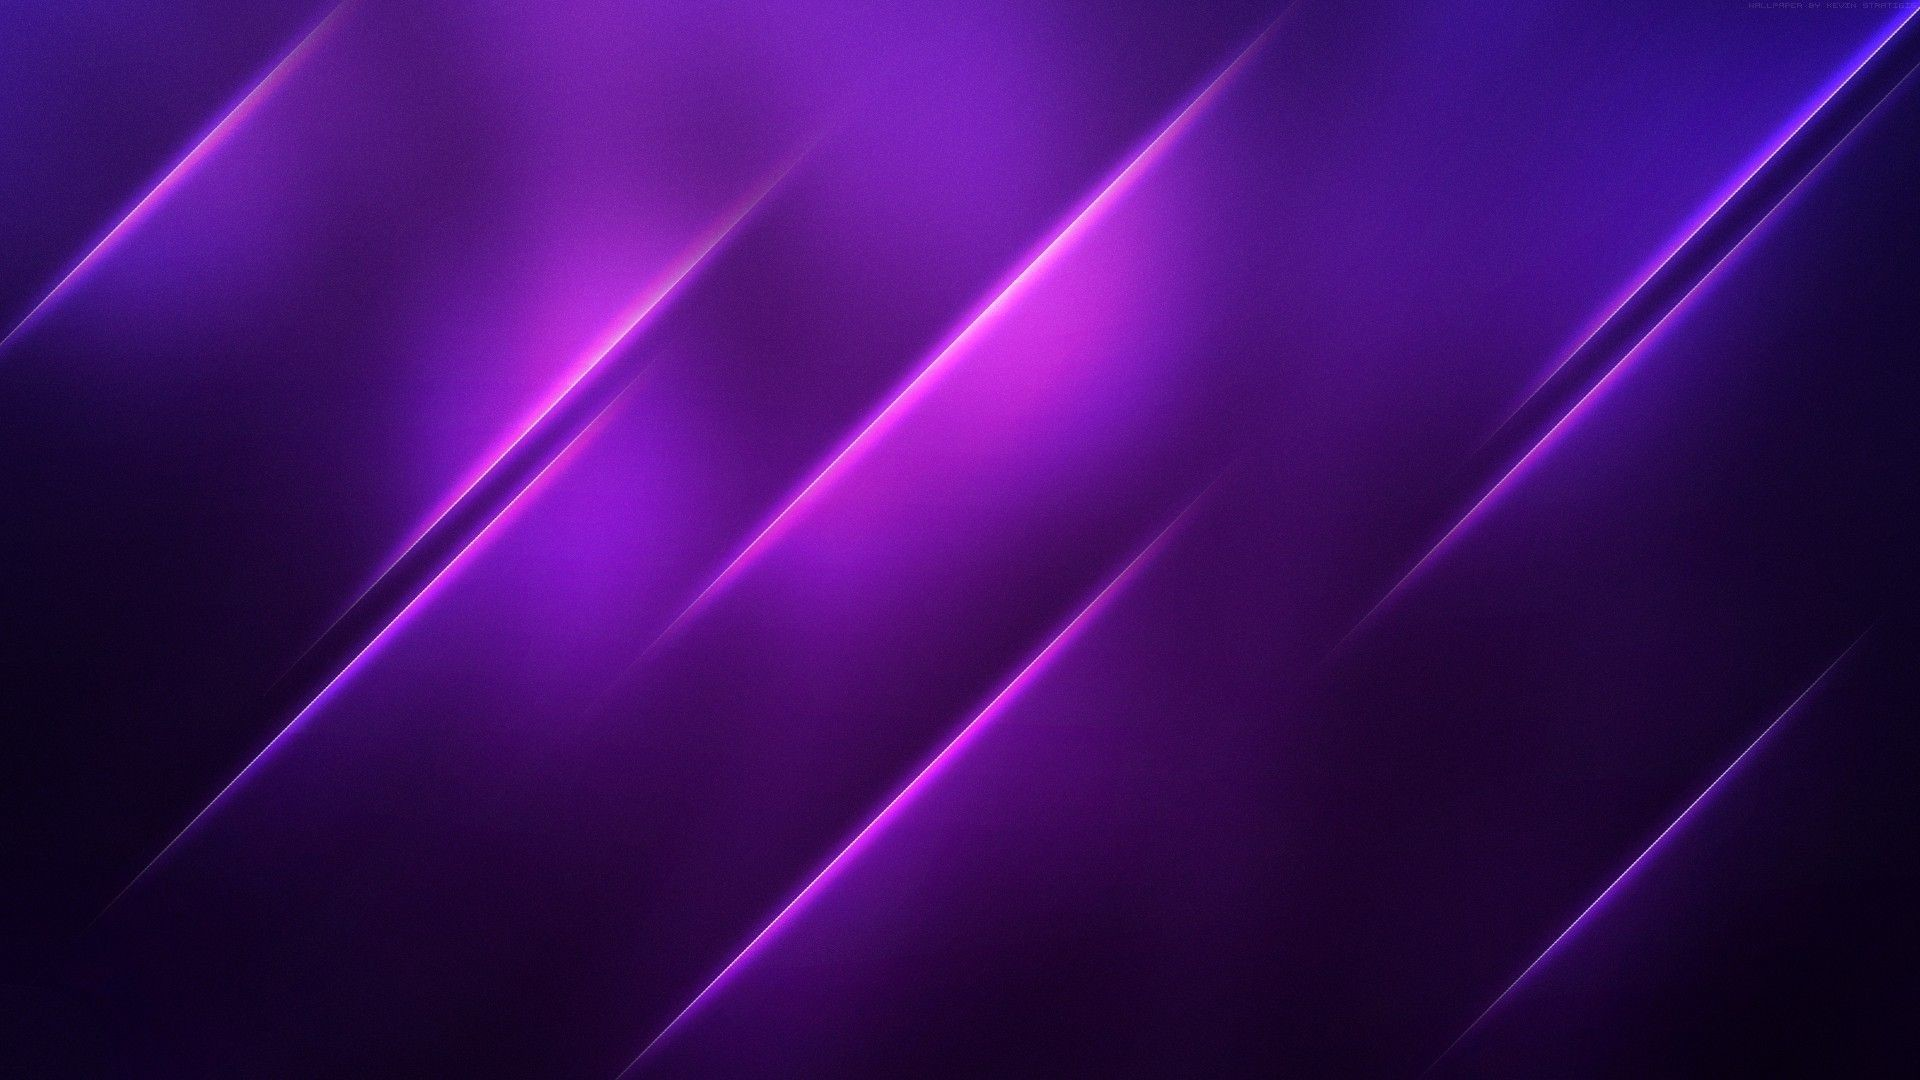 HD Backgrounds Solid Color Free Download.